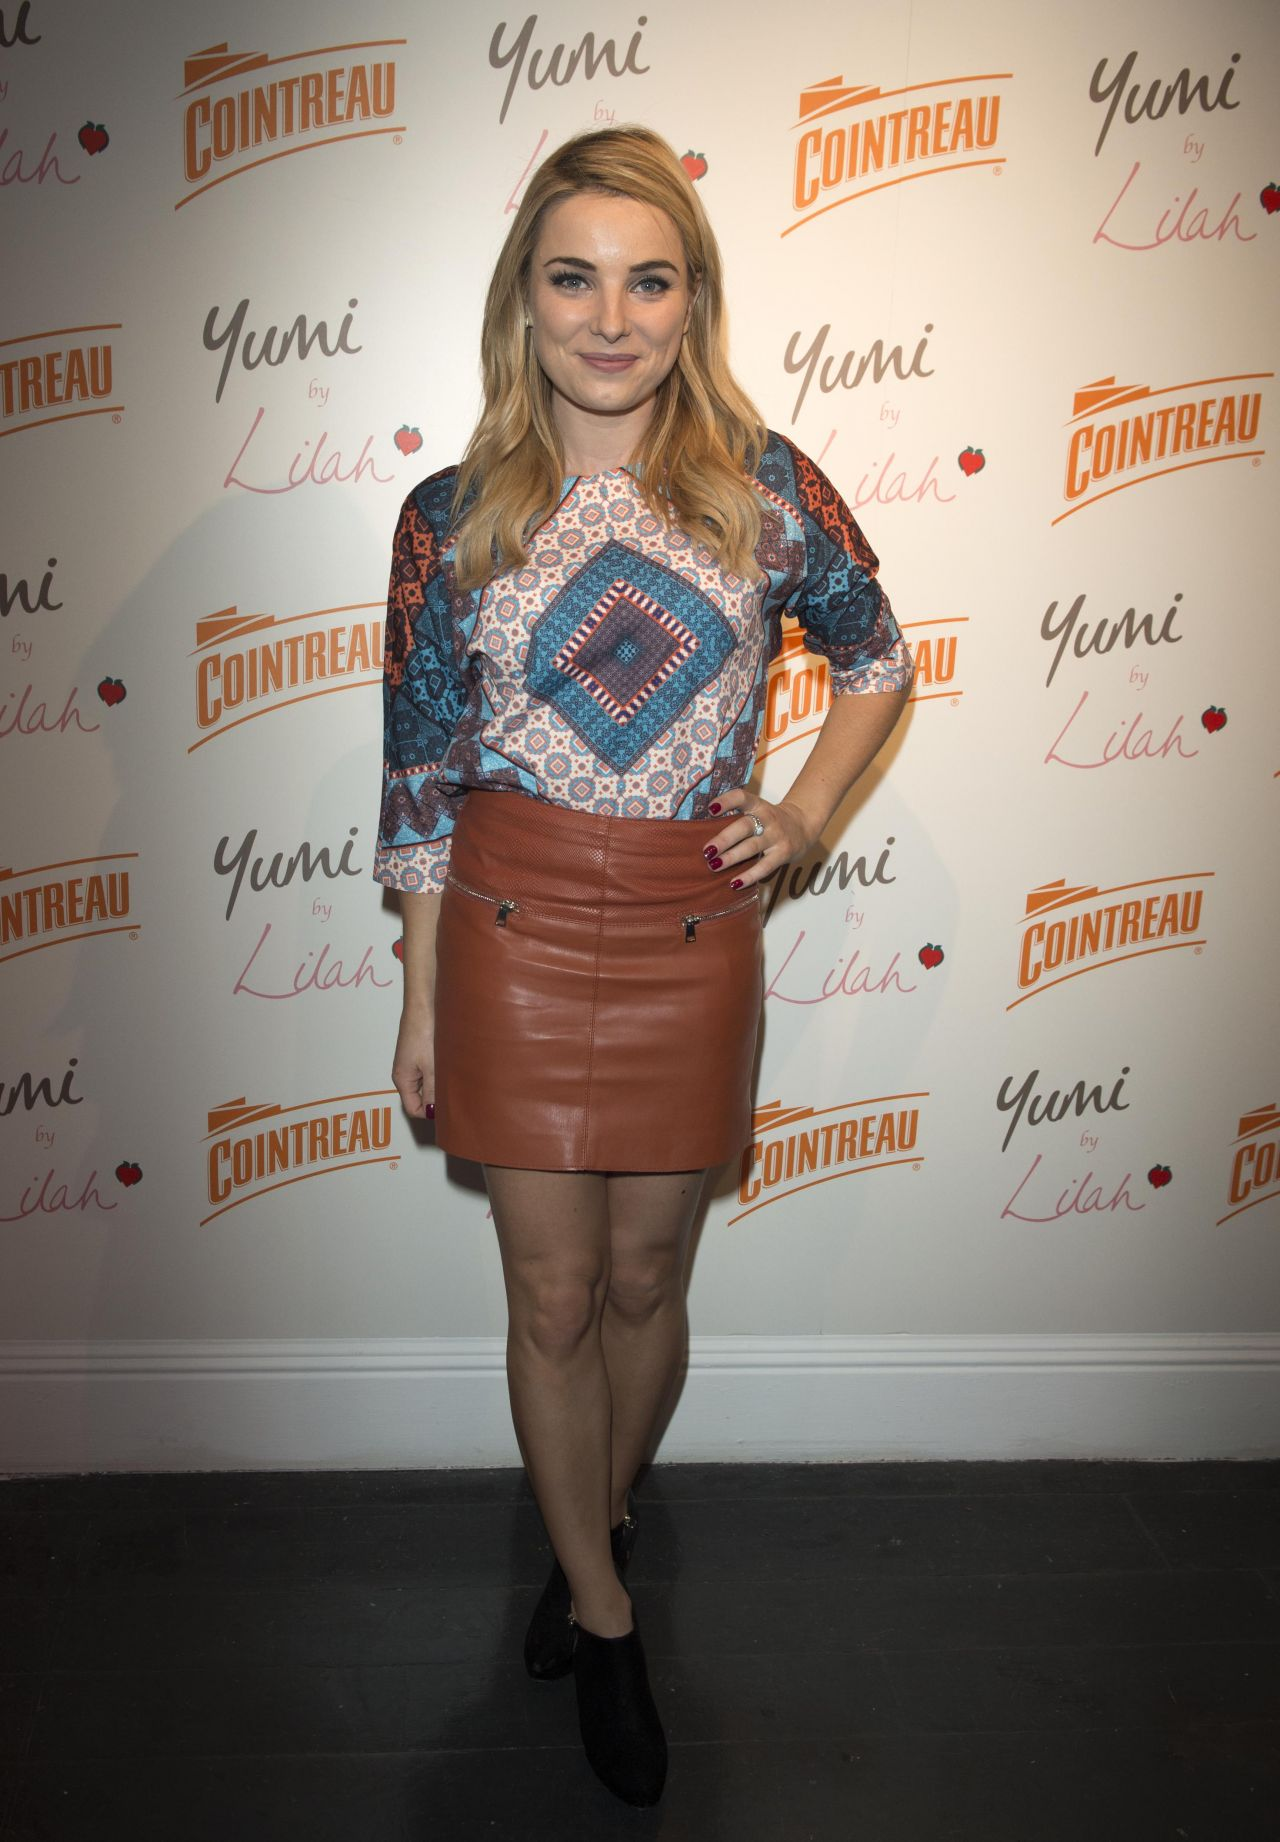 Sian Welby Cointreau Launch Party For Yumi By Lilah Spring Summer 2016 Collection In London